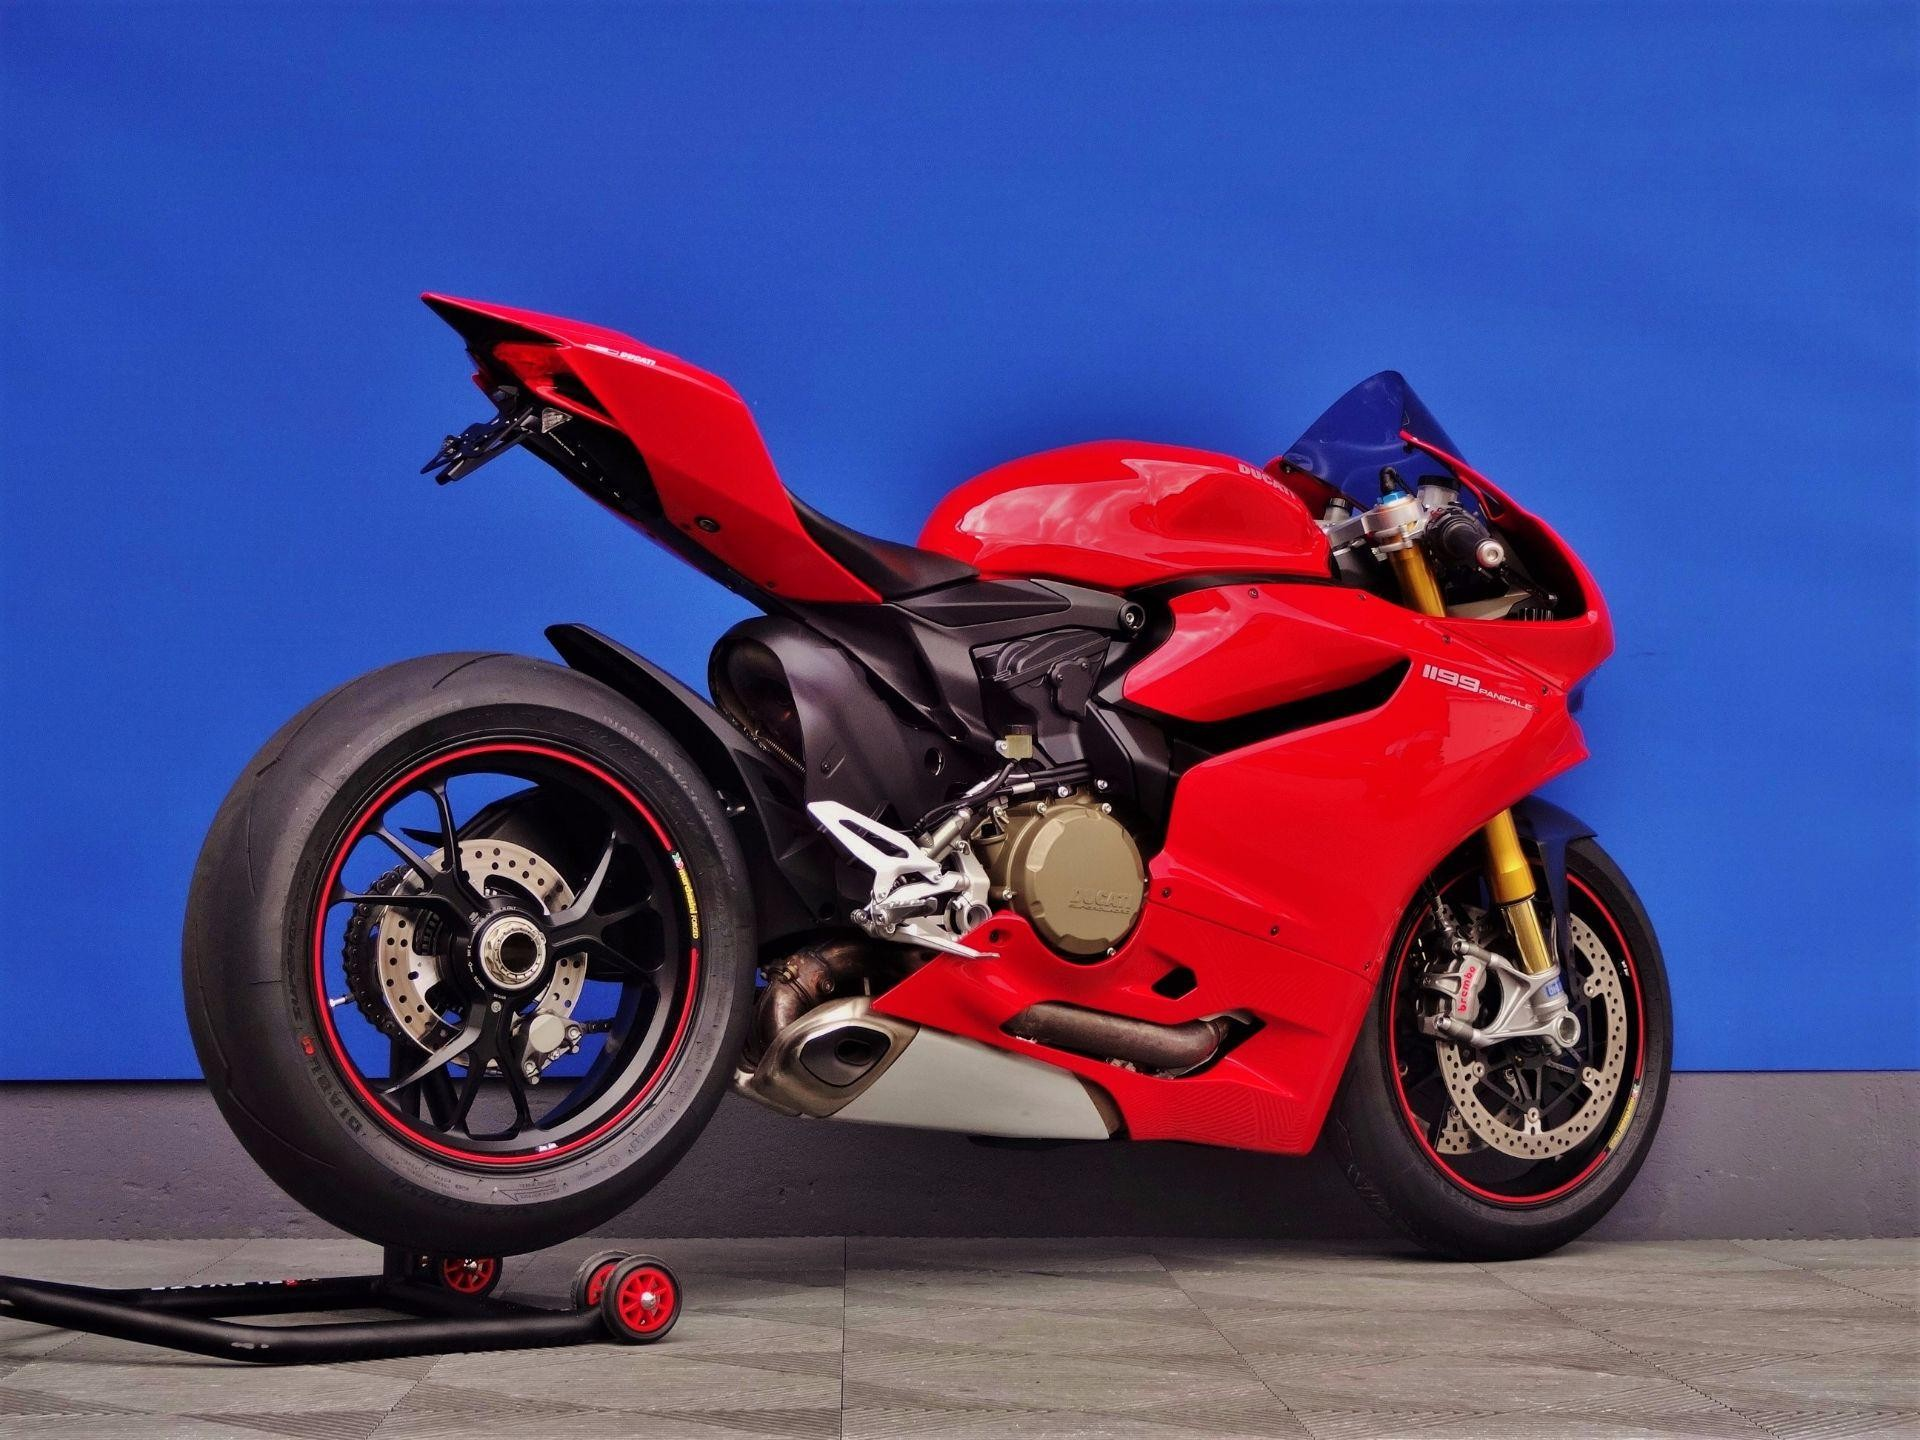 ducati 1199 superbike panigale s abs vogel motorbikes. Black Bedroom Furniture Sets. Home Design Ideas